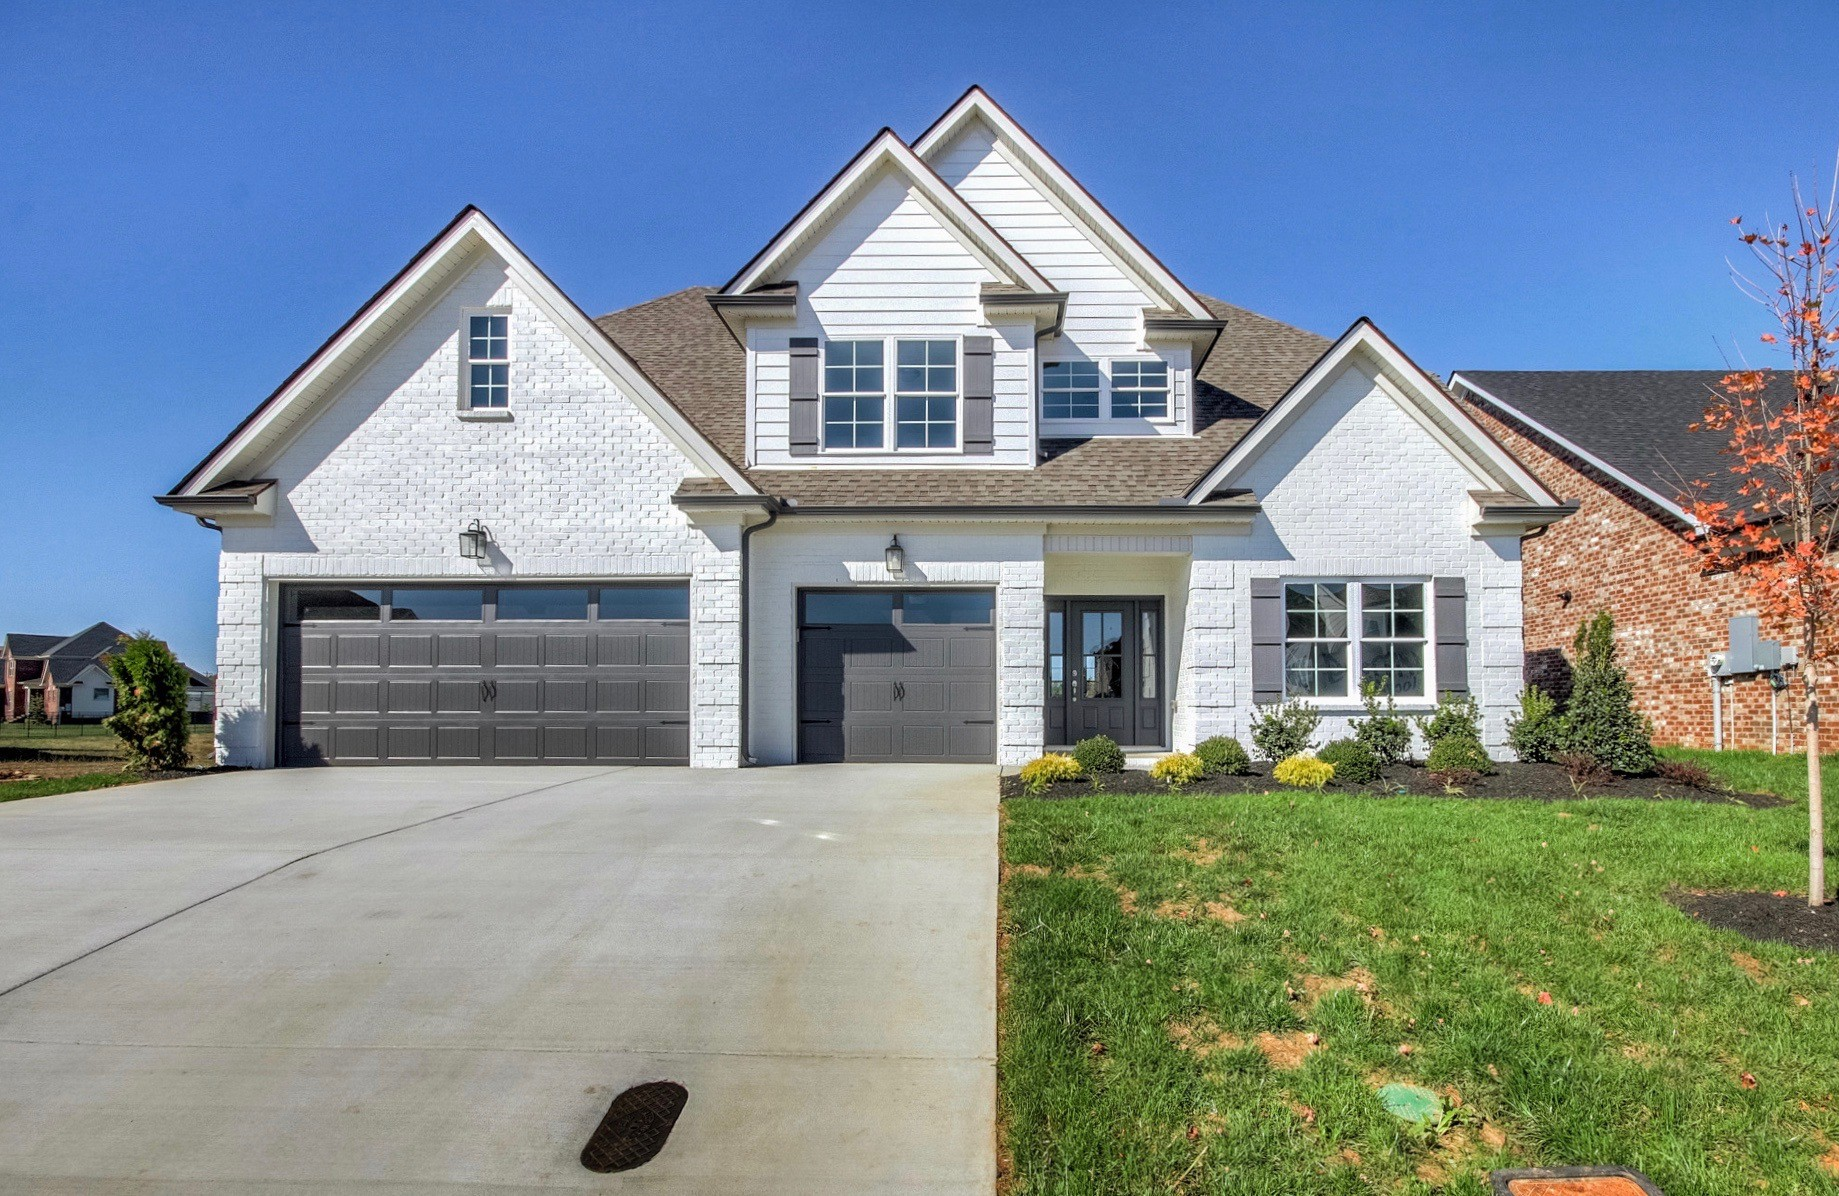 3923 Runyan Cove (Lot 20) 37127 - One of Murfreesboro Homes for Sale